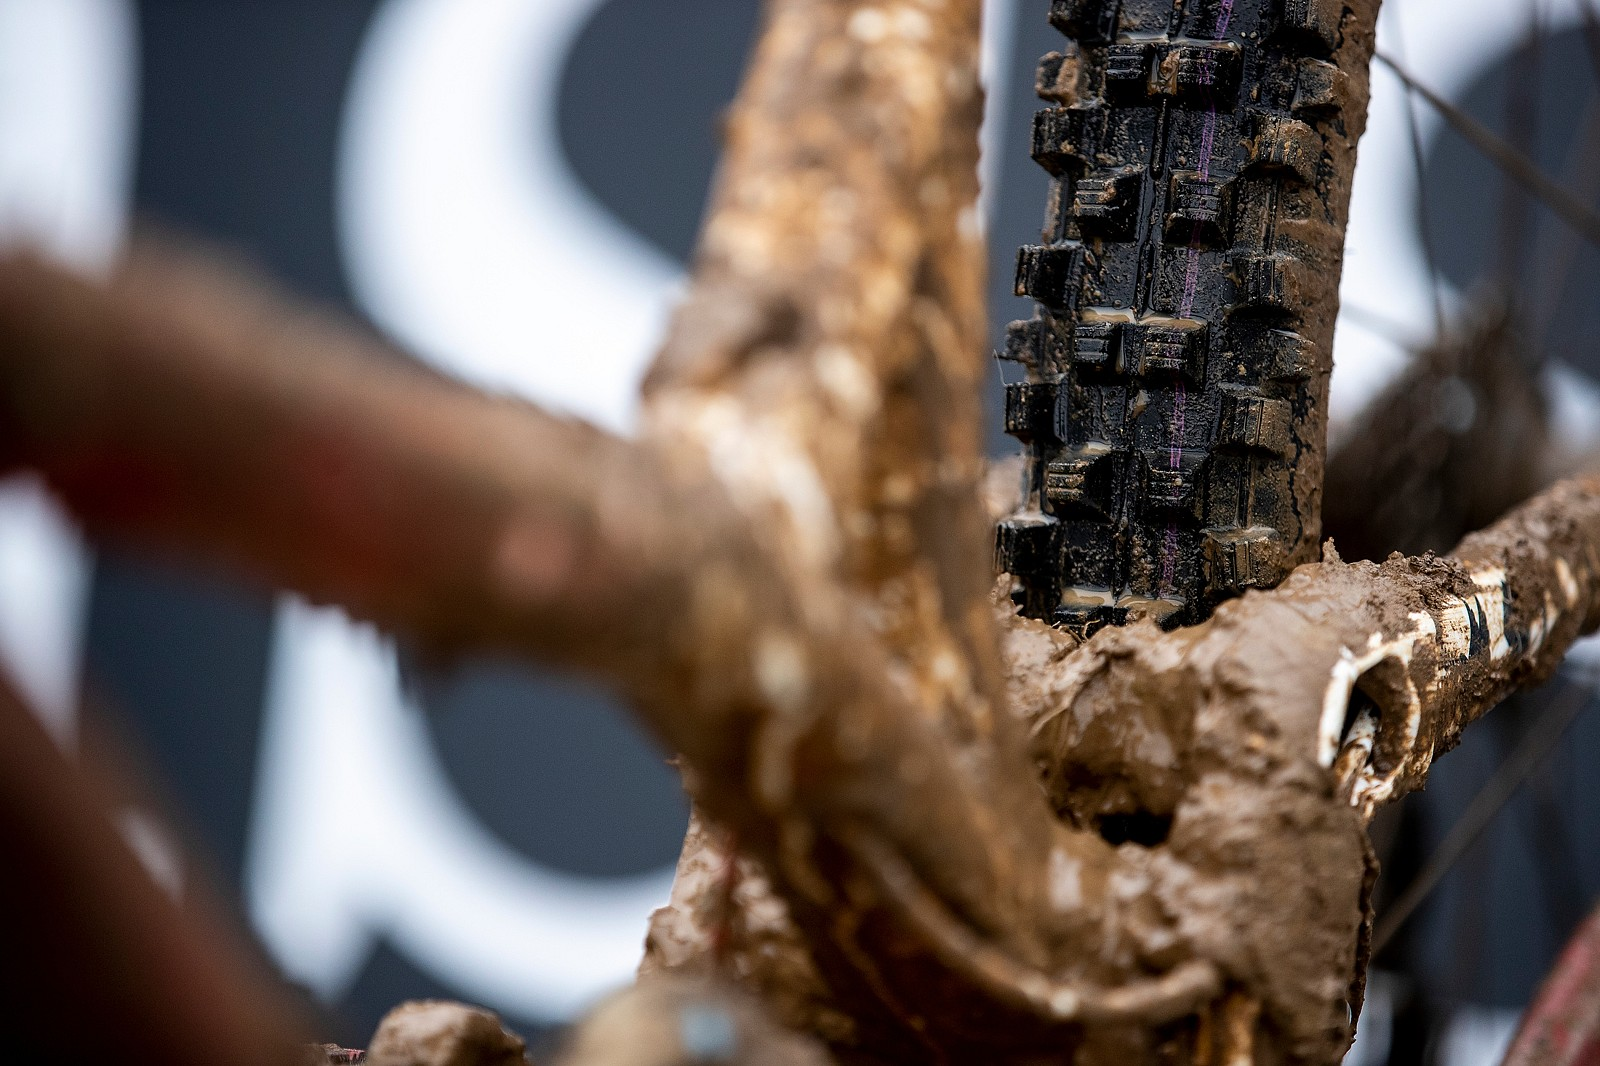 Schwalbe Dirty Dan Spikes - WINNING BIKE: Camille Balanche's Commencal Supreme from World Champs - Mountain Biking Pictures - Vital MTB